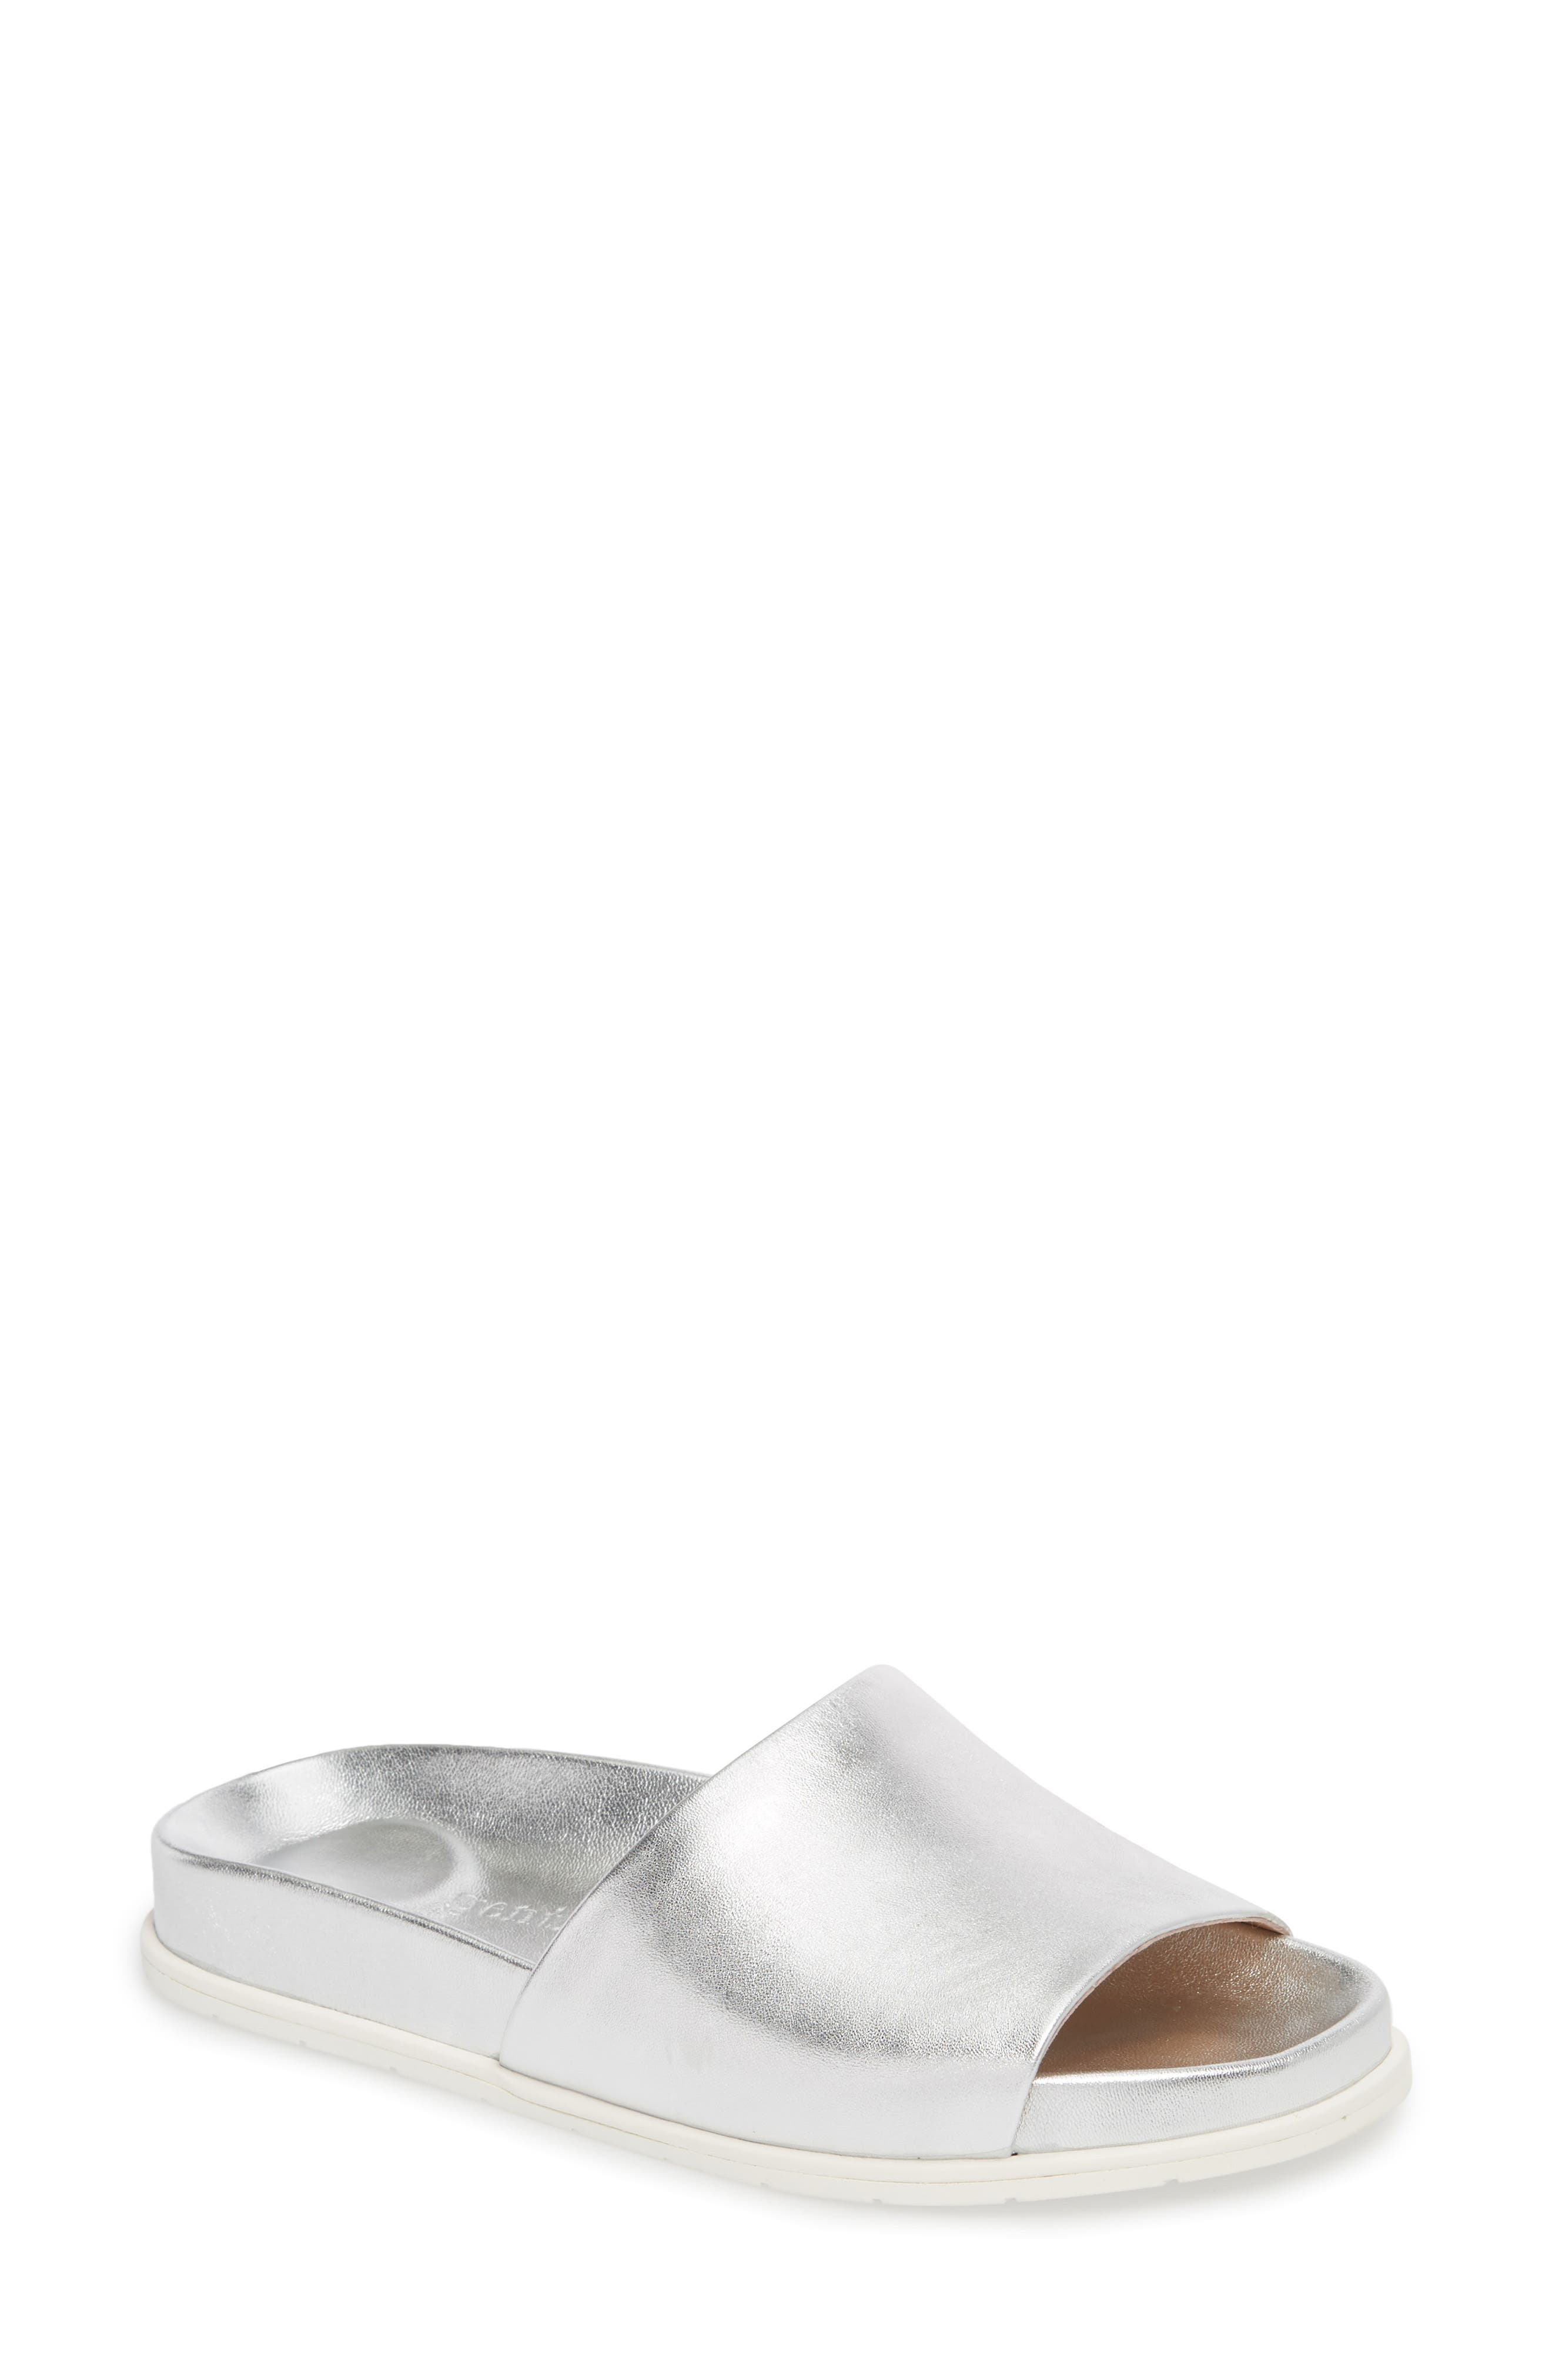 GENTLE SOULS BY KENNETH COLE Iona Slide Sandal, Main, color, SILVER METALLIC LEATHER